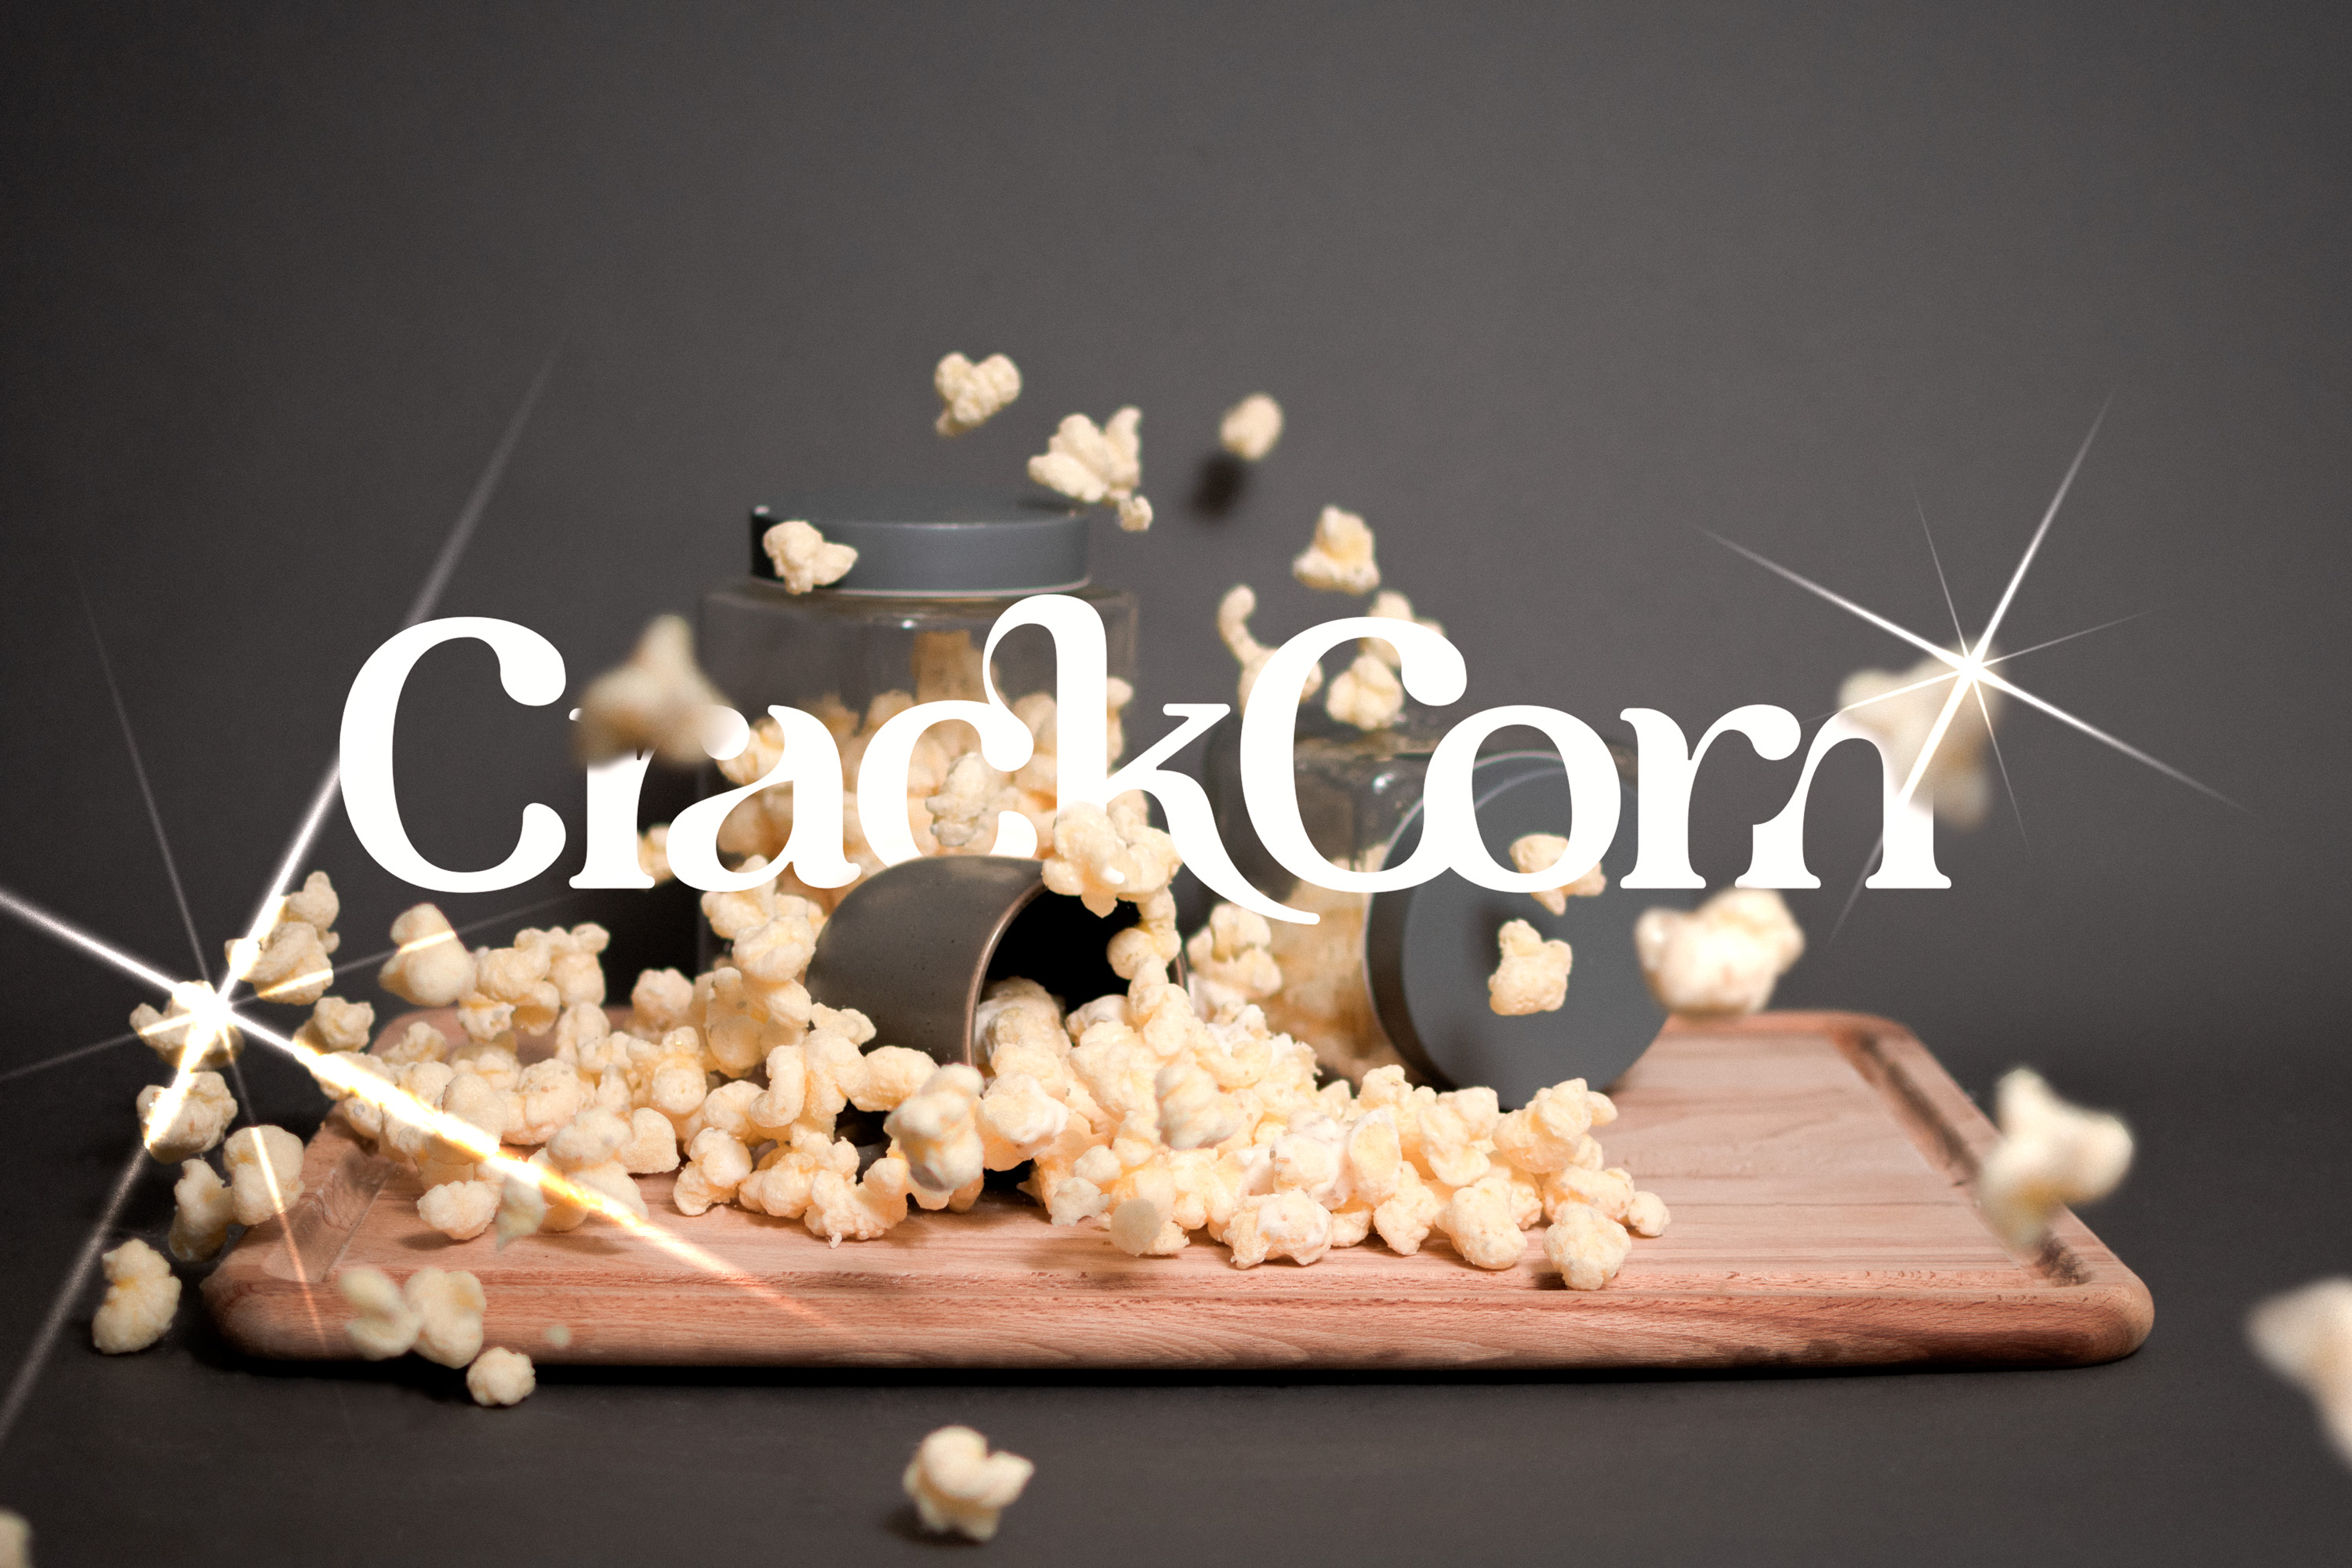 CrackCorn